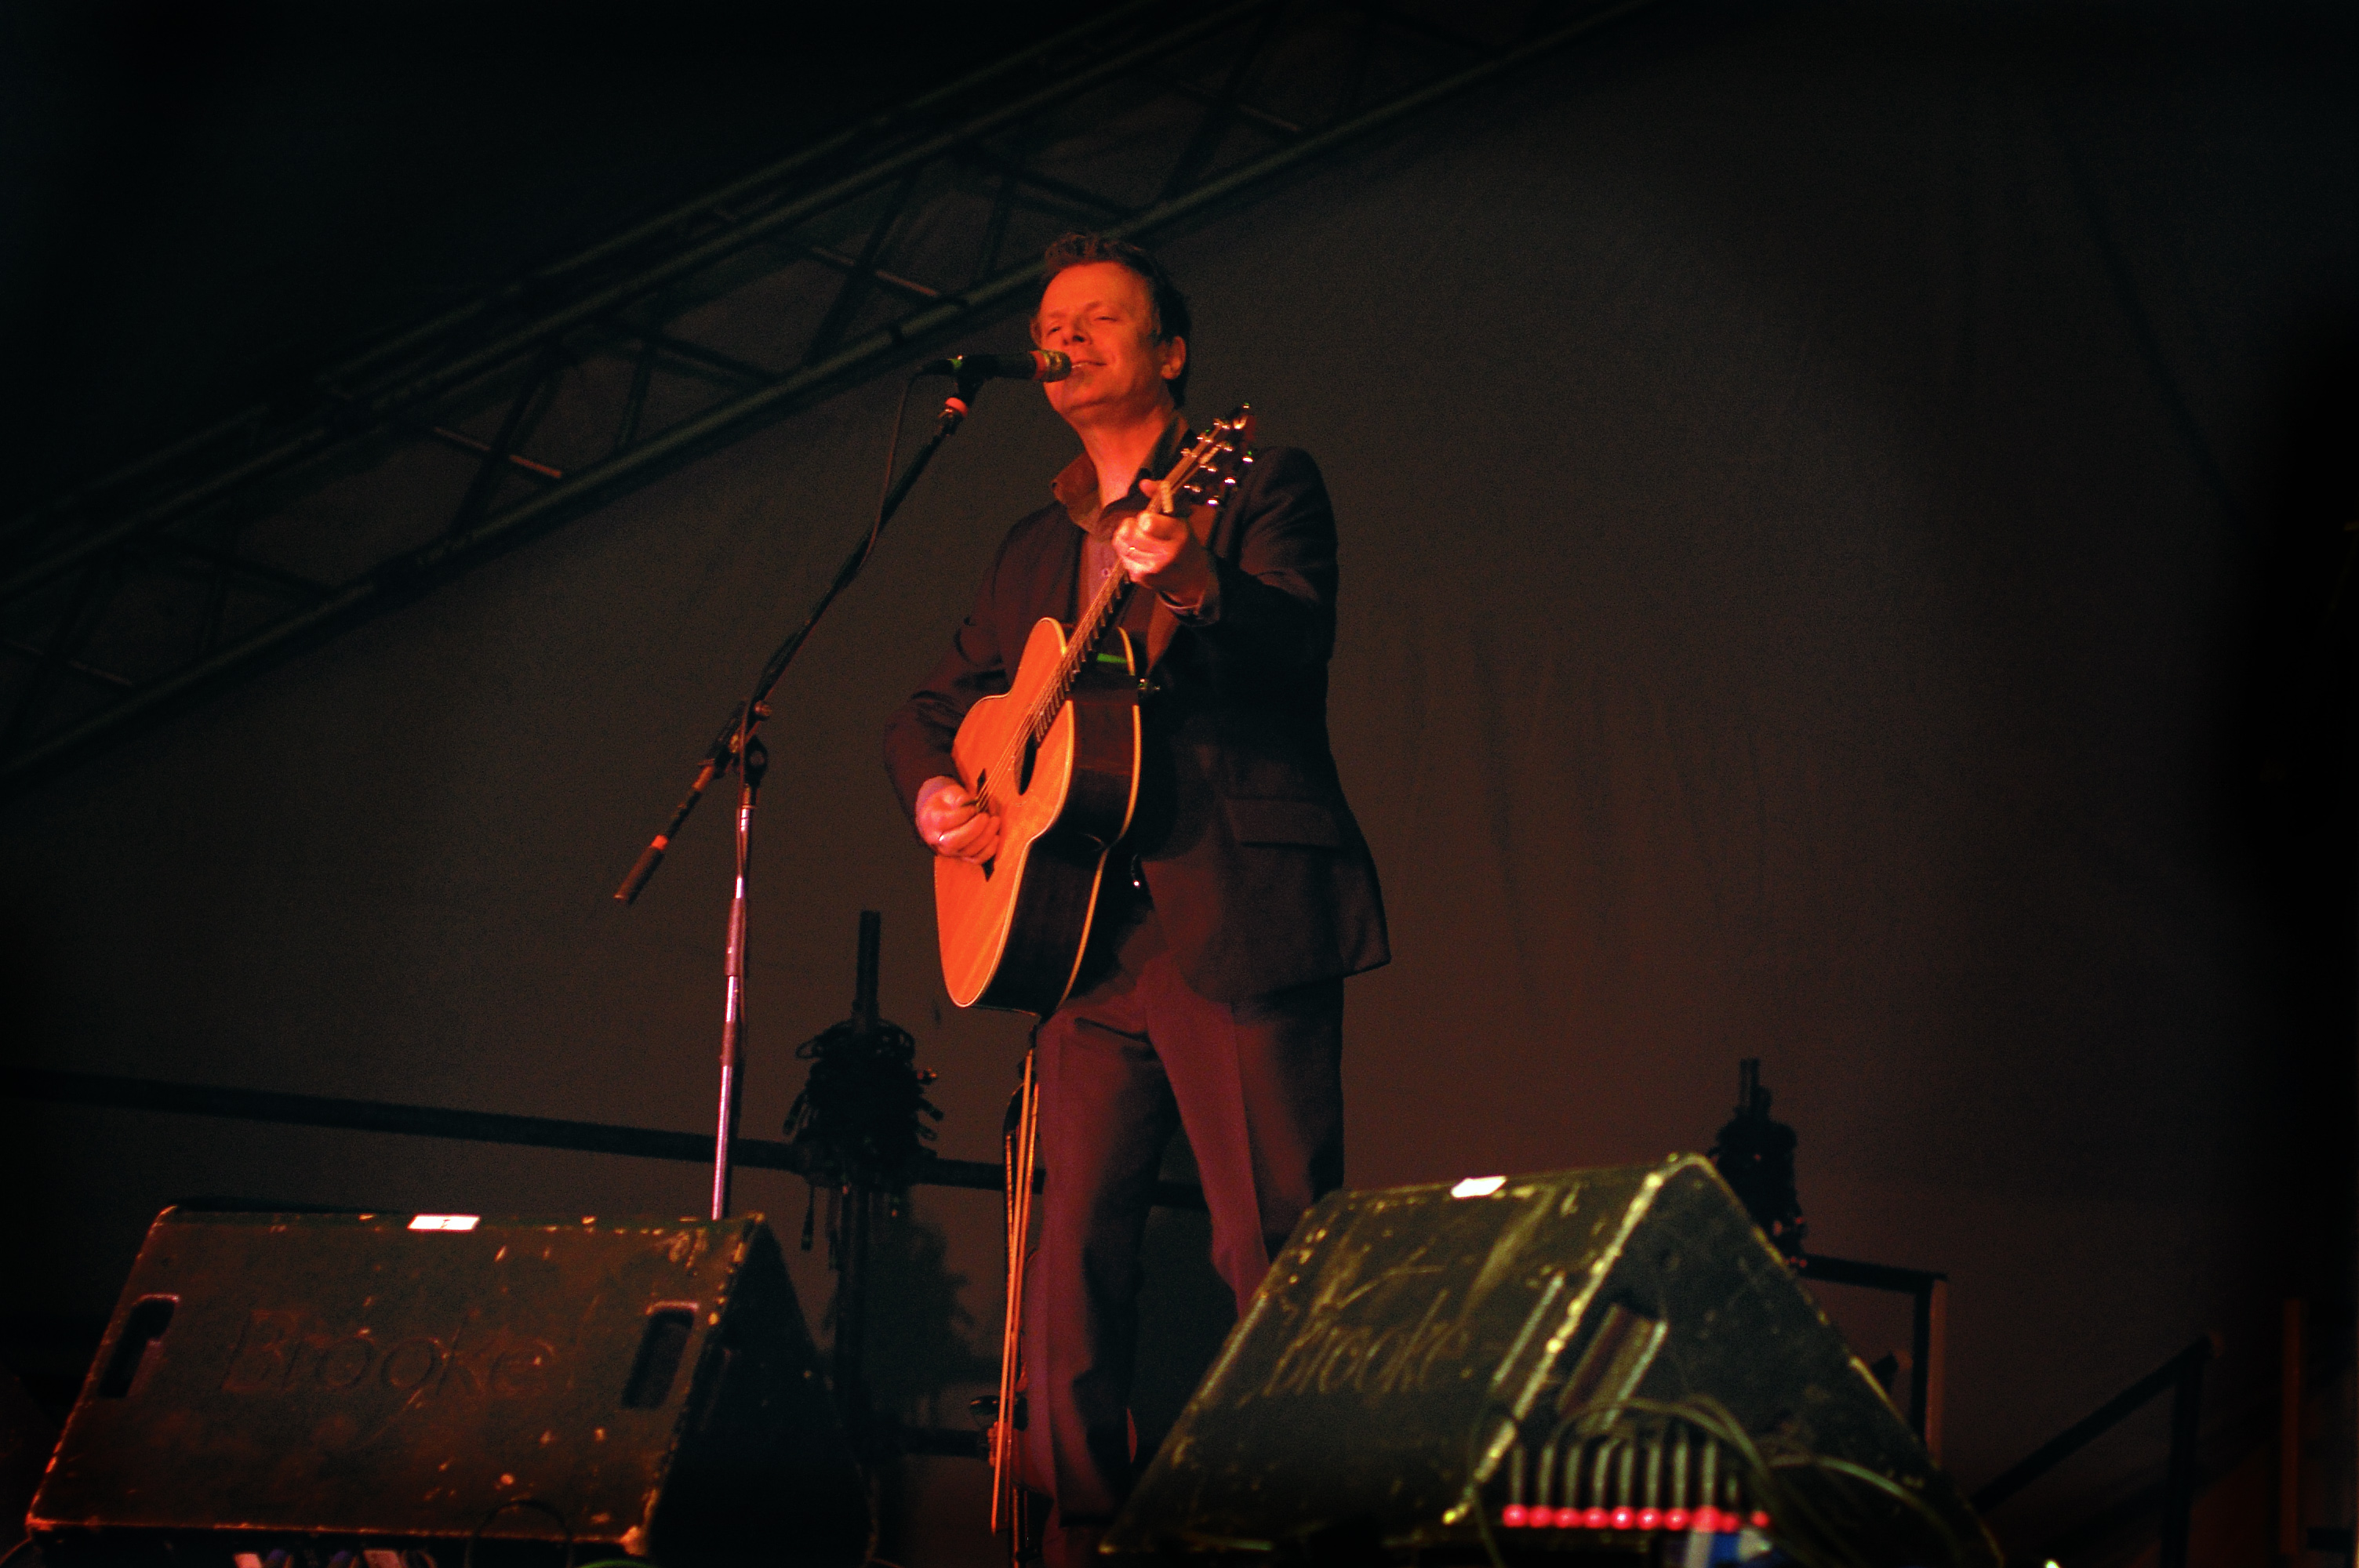 UK Acoustic Festival, Uttoxeter 2011